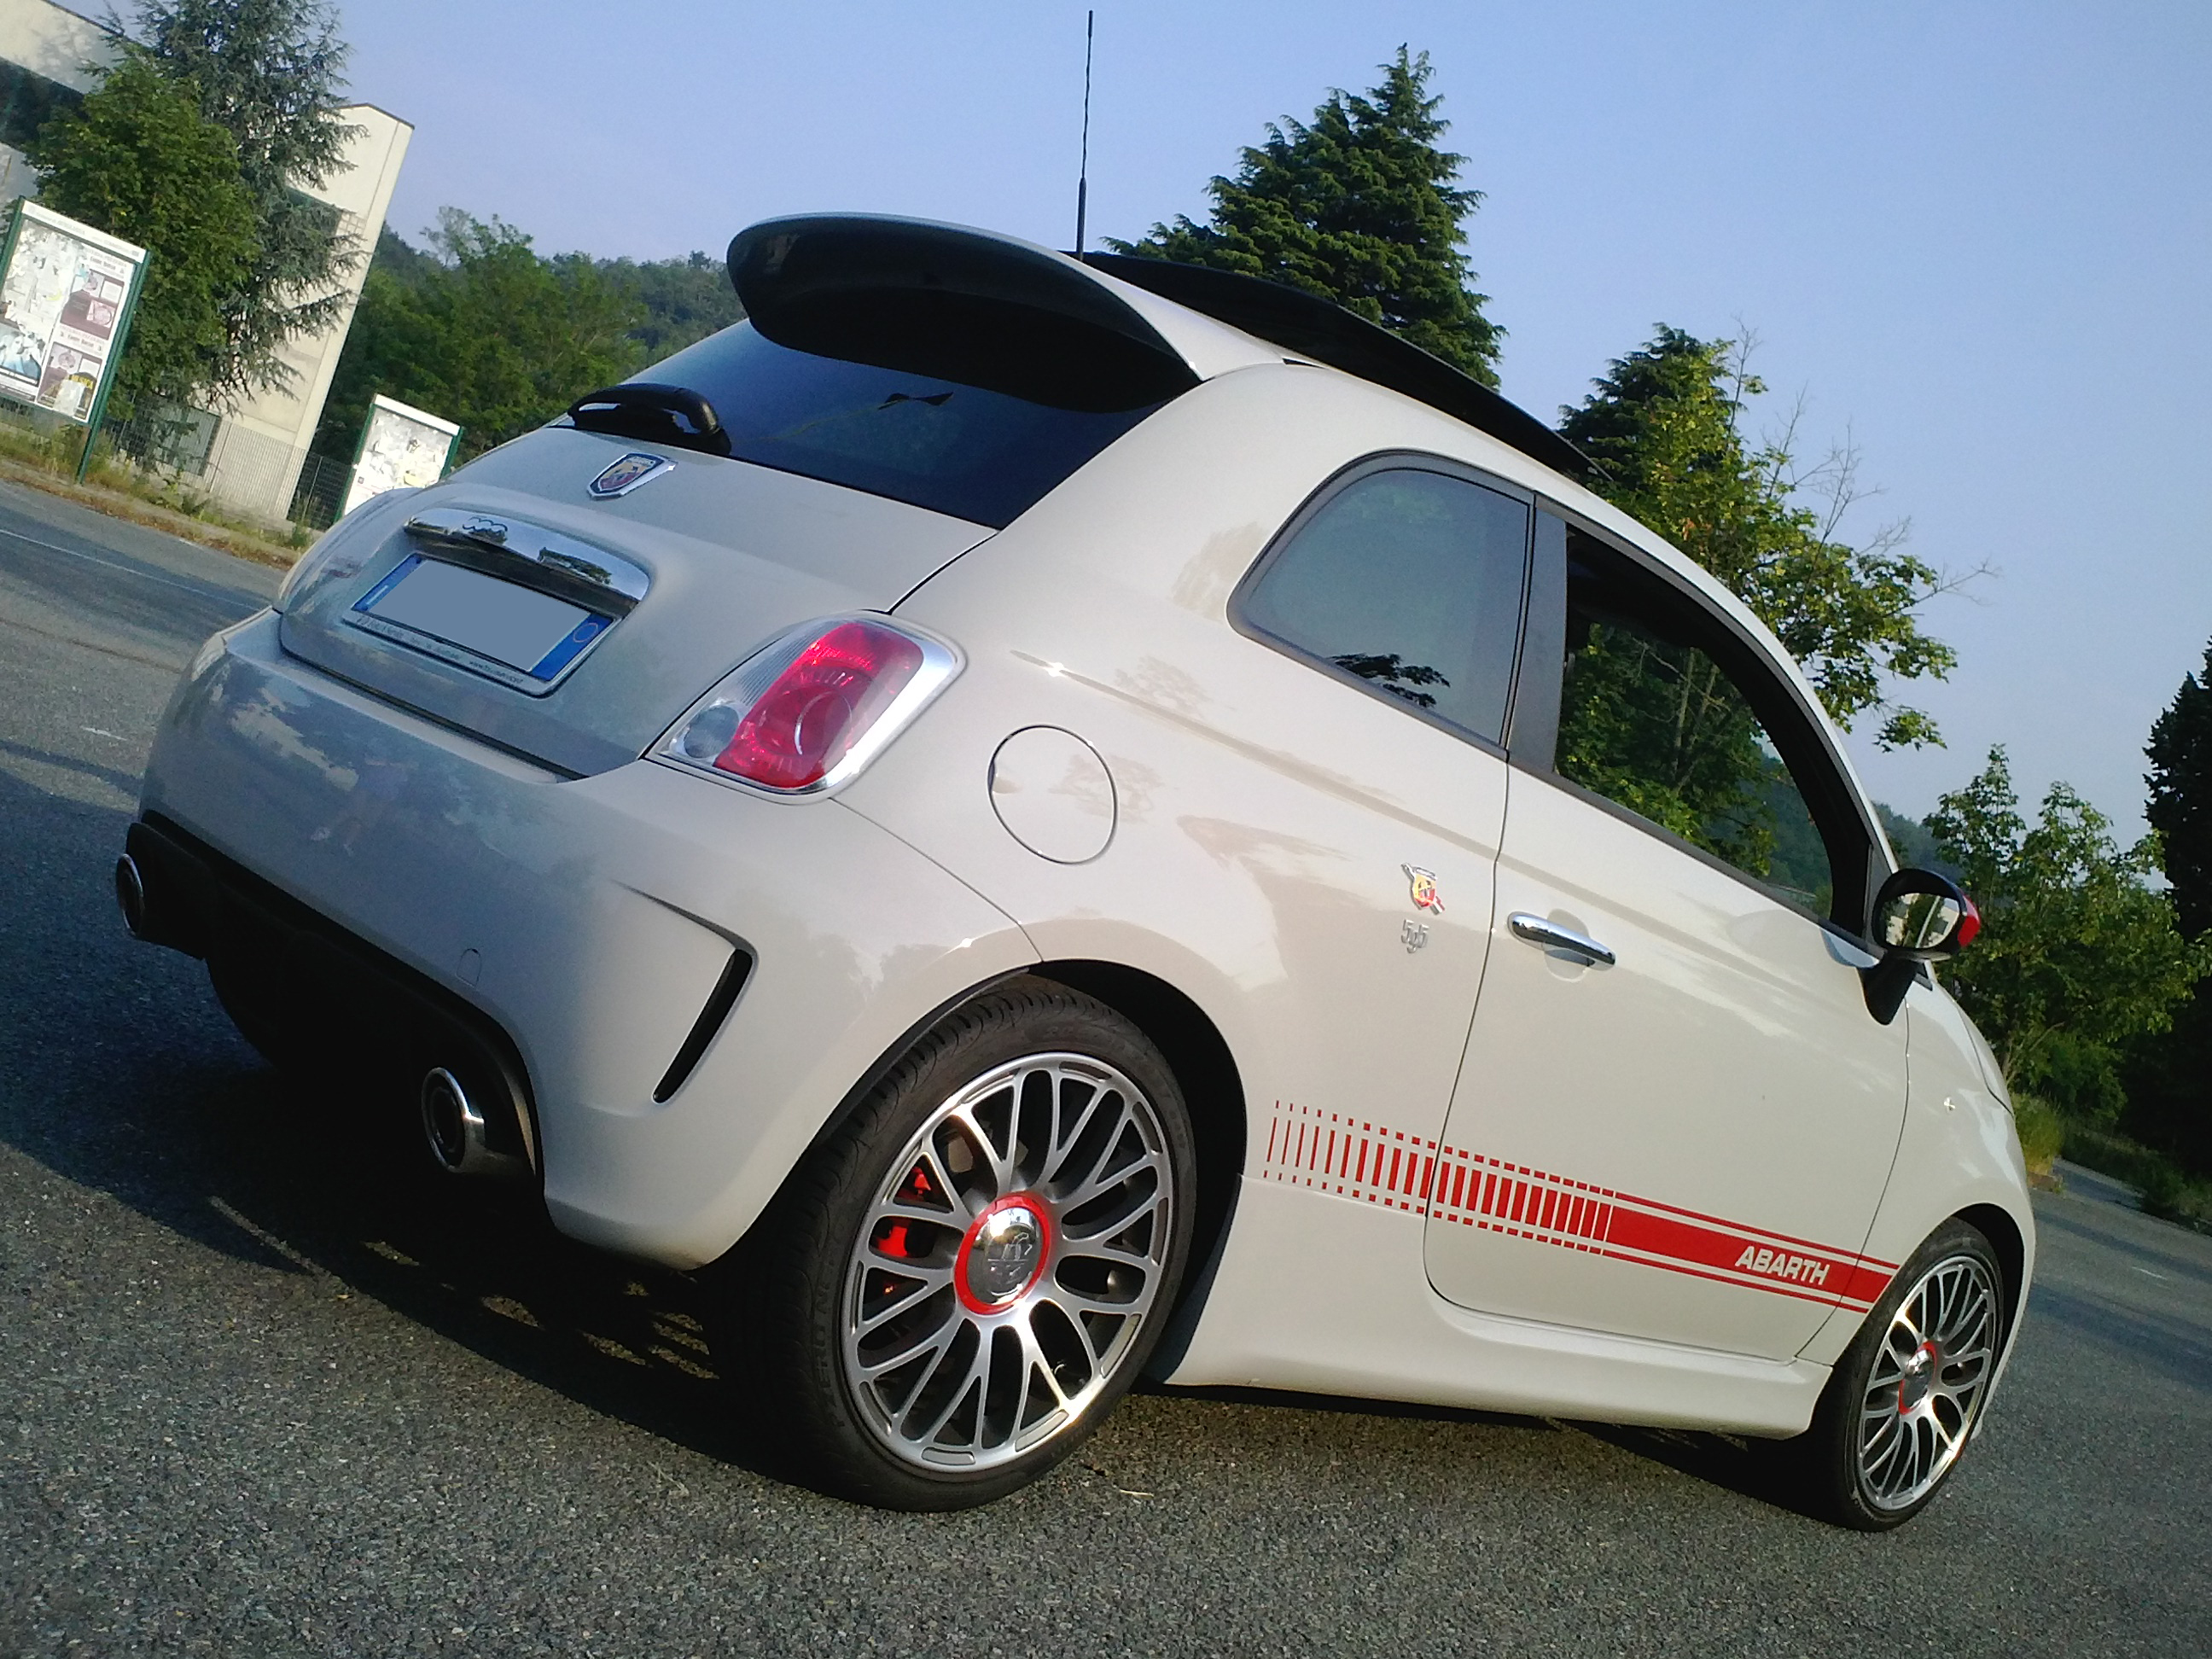 file abarth 595 elabora wikimedia commons. Black Bedroom Furniture Sets. Home Design Ideas